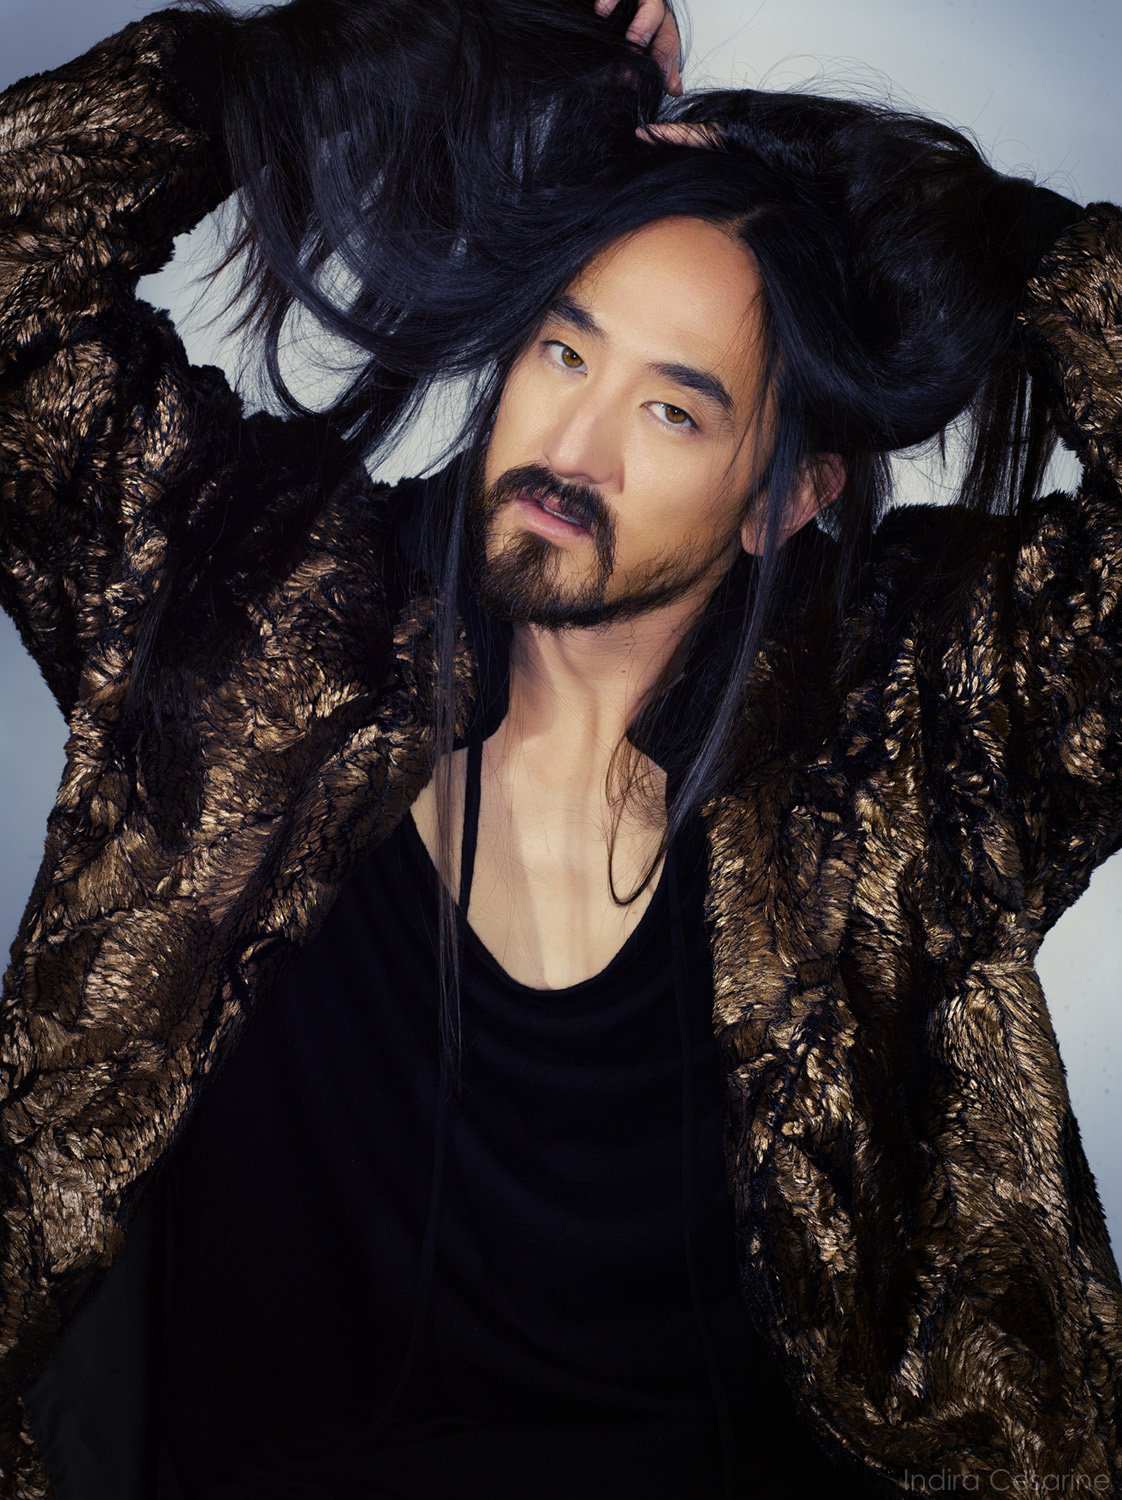 Steve-Aoki-The-Untitled-Magazine-Photography-by-Indira-Cesarine-004.jpg